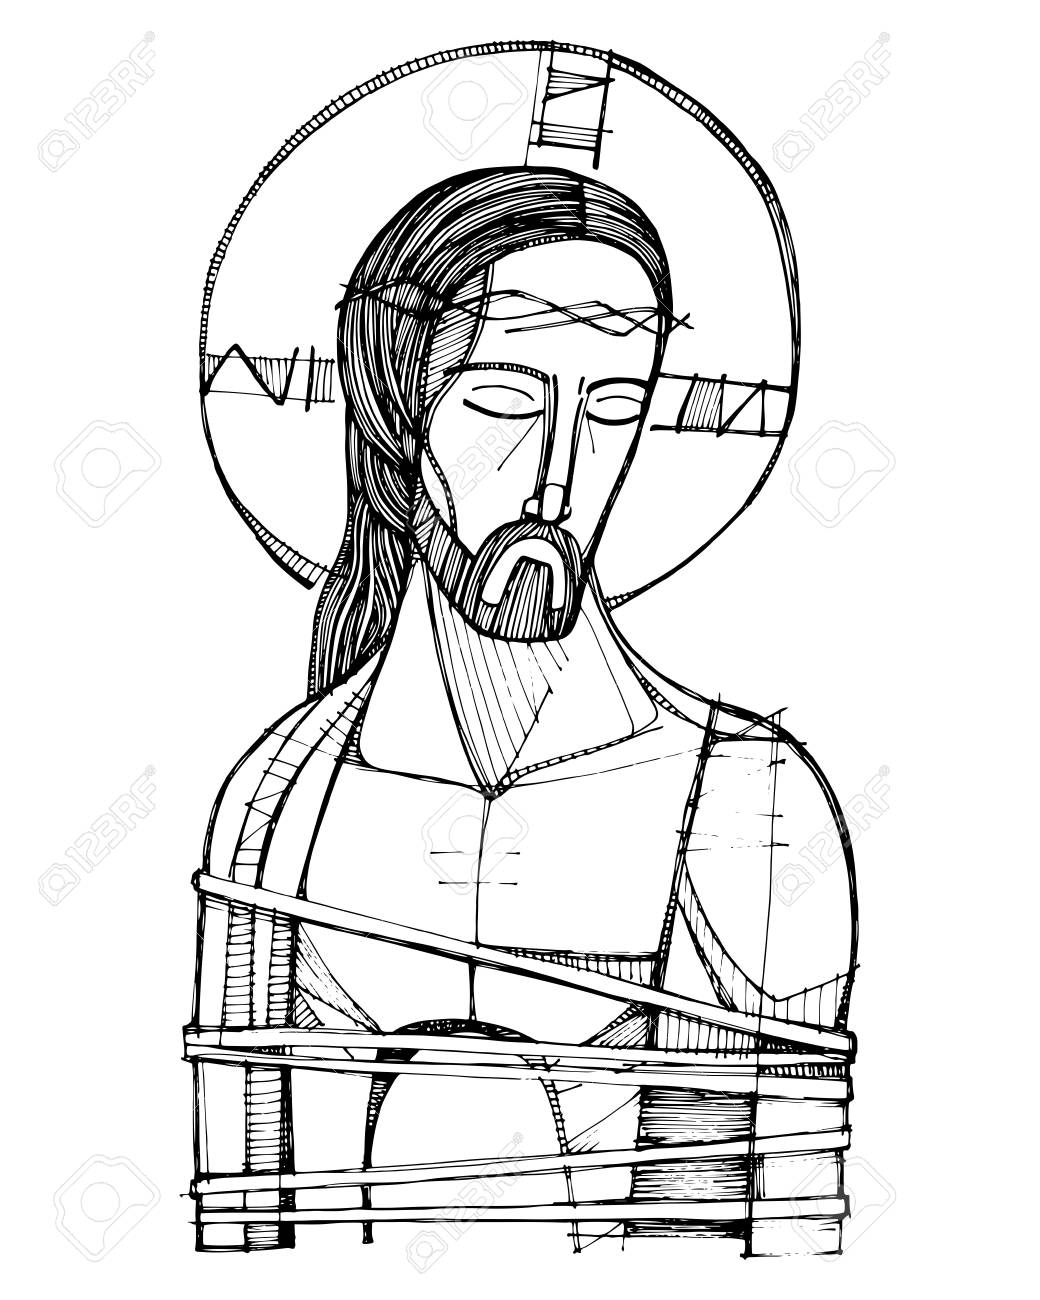 Illustration Vectorielle Dessines A La Main Ou Dessin De Jesus